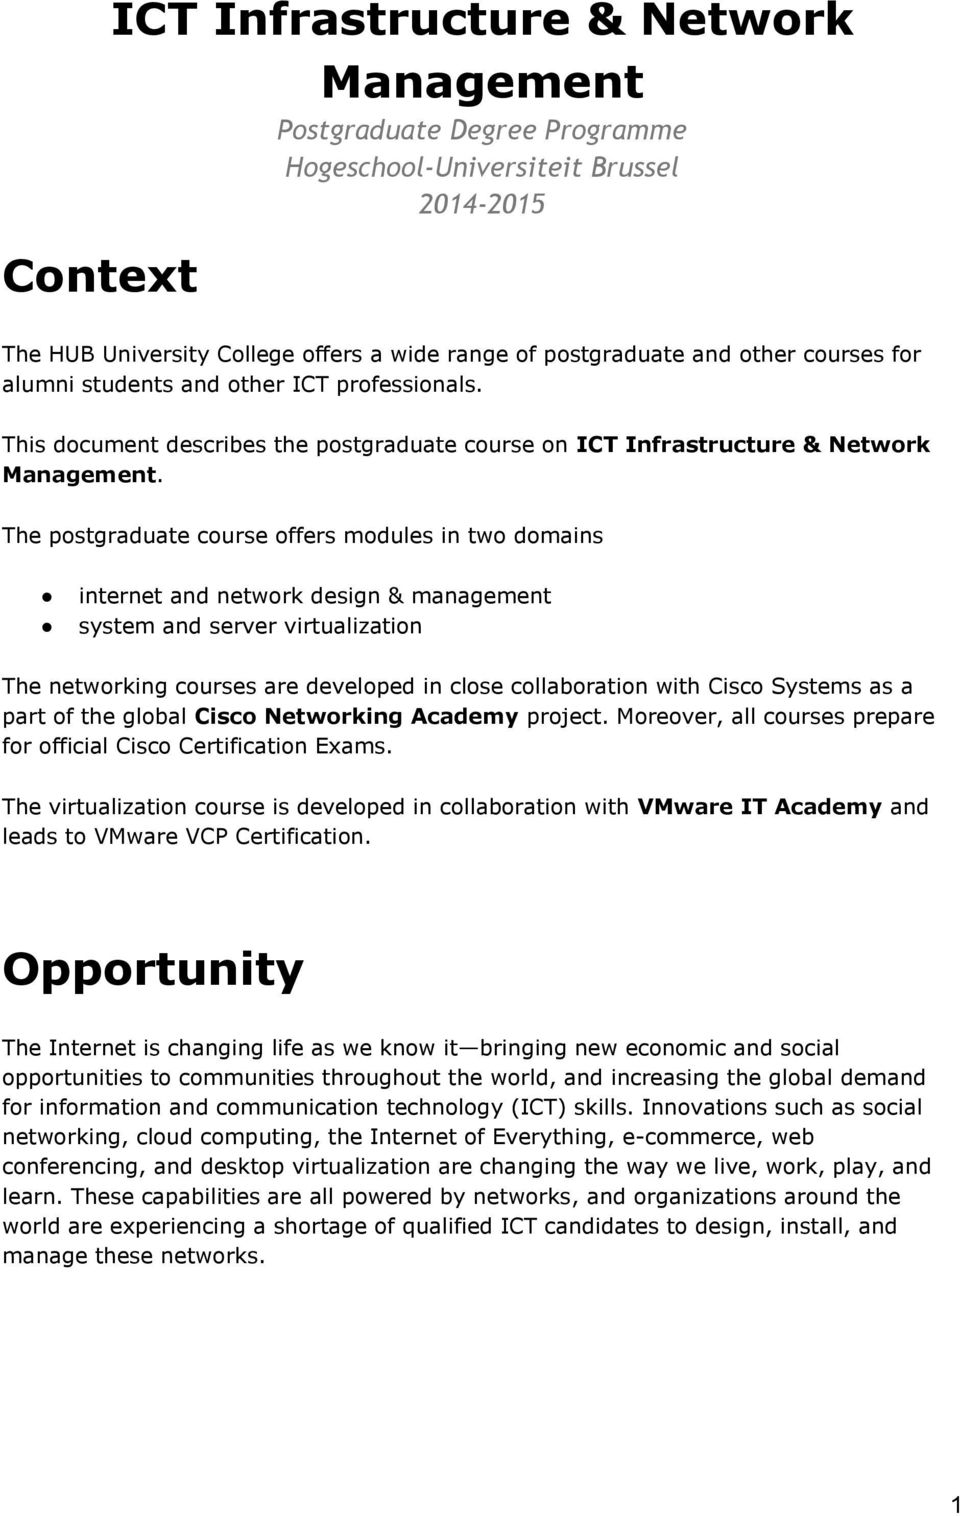 The postgraduate course offers modules in two domains internet and network design & management system and server virtualization The networking courses are developed in close collaboration with Cisco